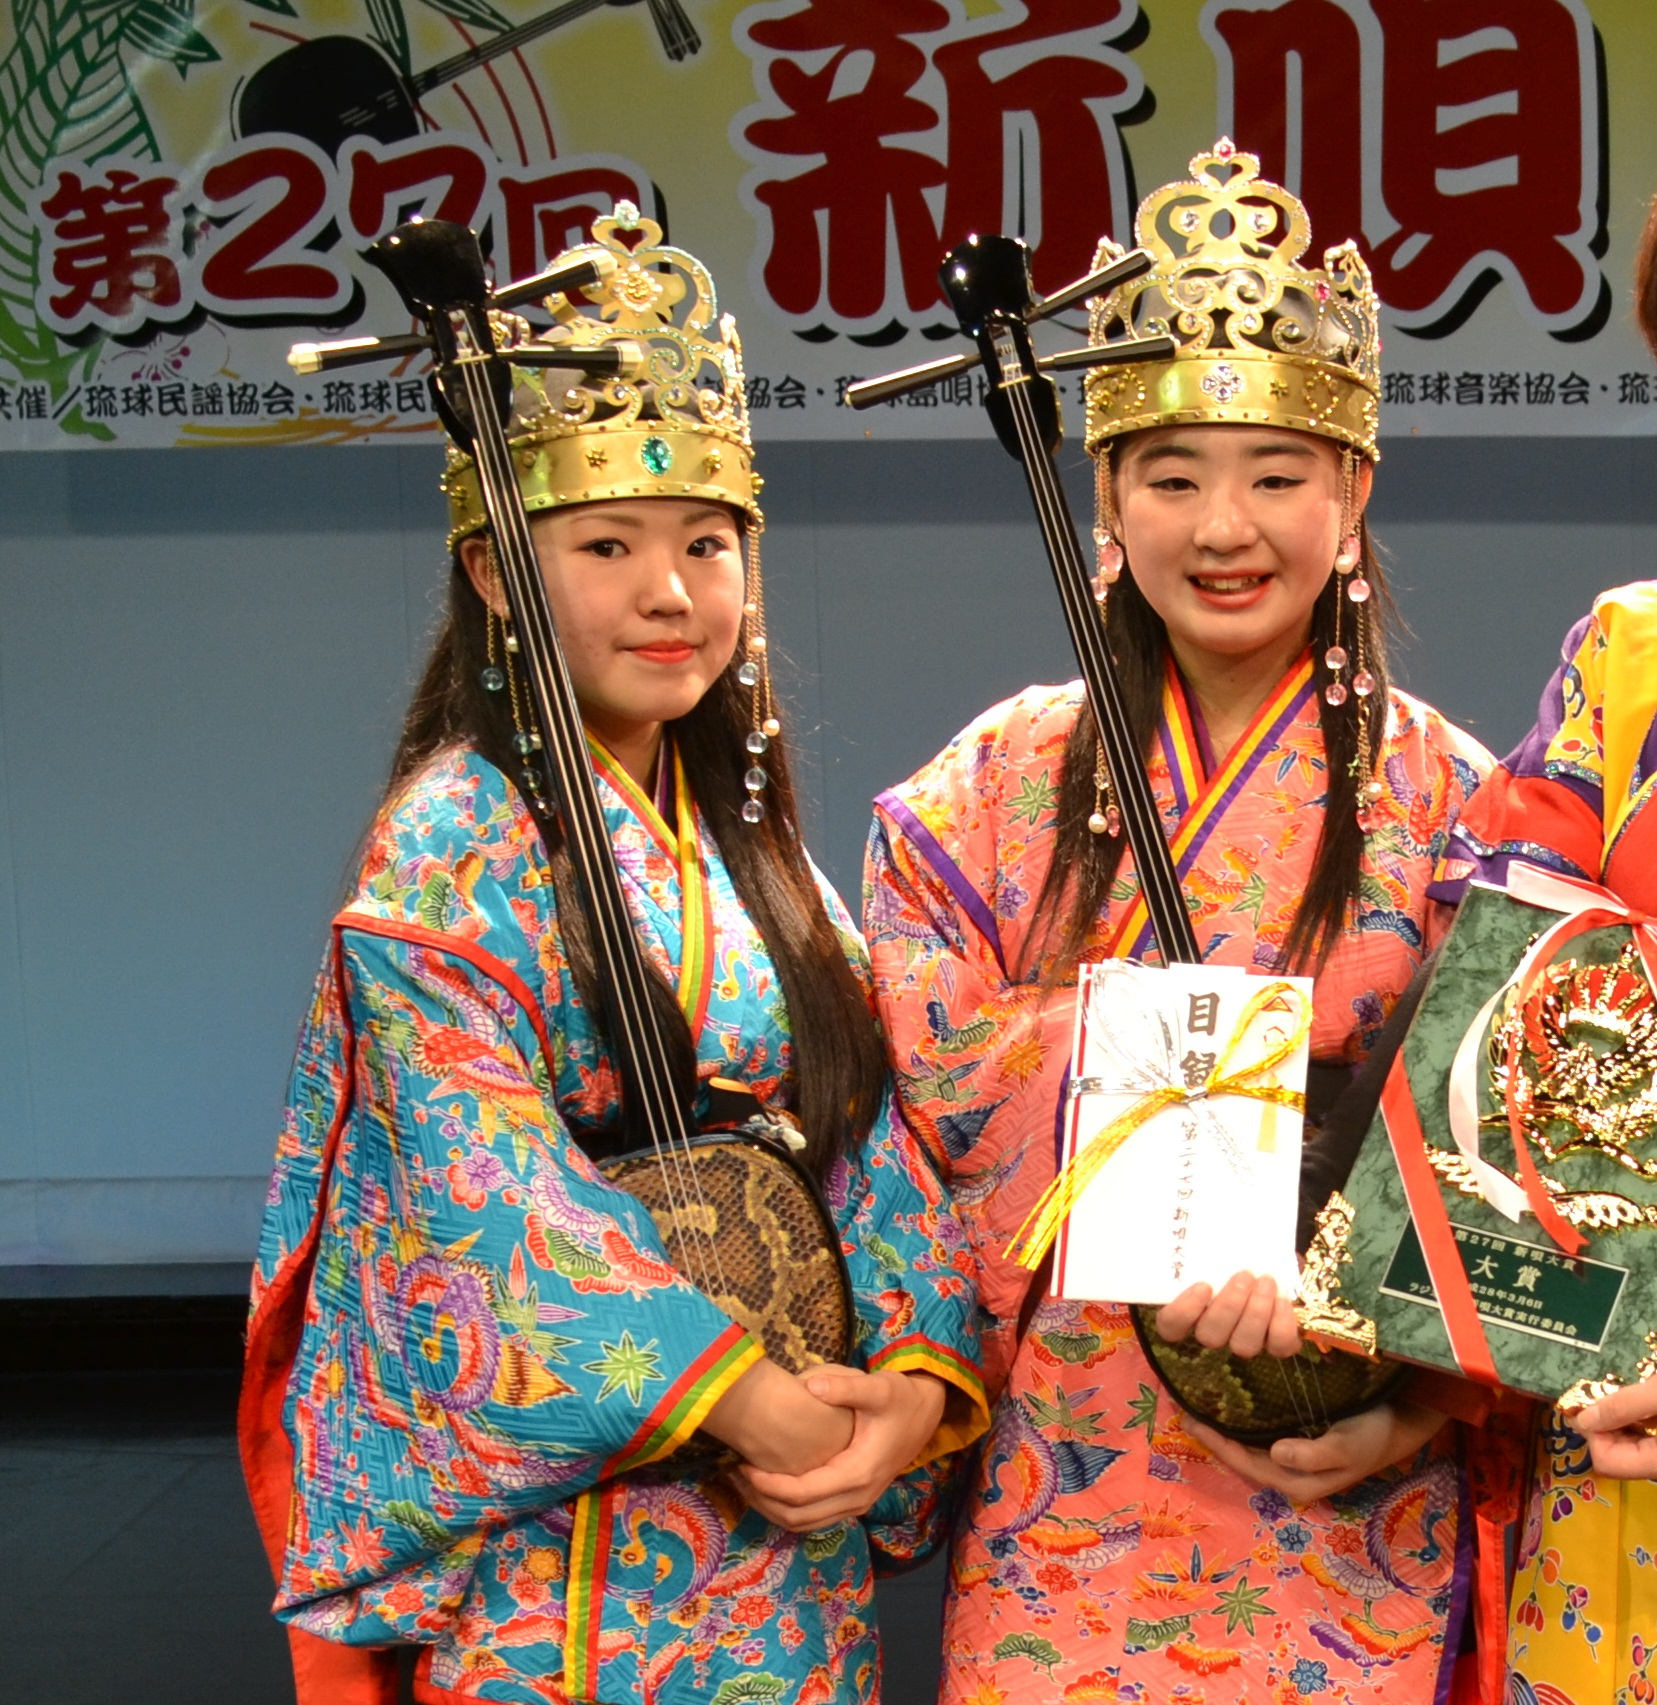 Radio Okinawa's 2016 Miuta Taisho winners: Daitontyu will perform on Saturday at 1:40 p.m. (Photo courtesy HUOA)